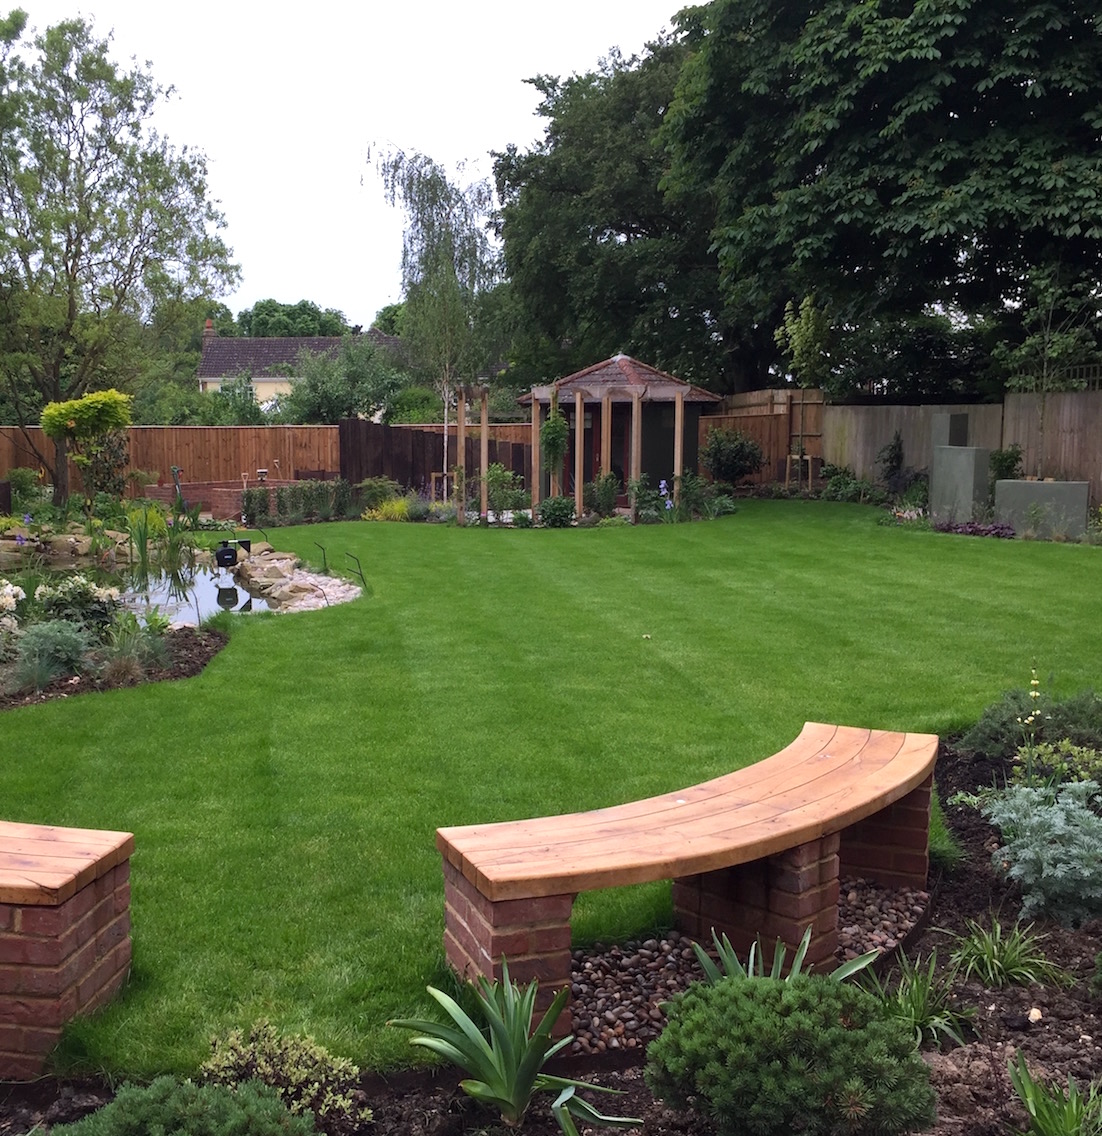 Loxley Curved Oak Benches and Formal Lawn